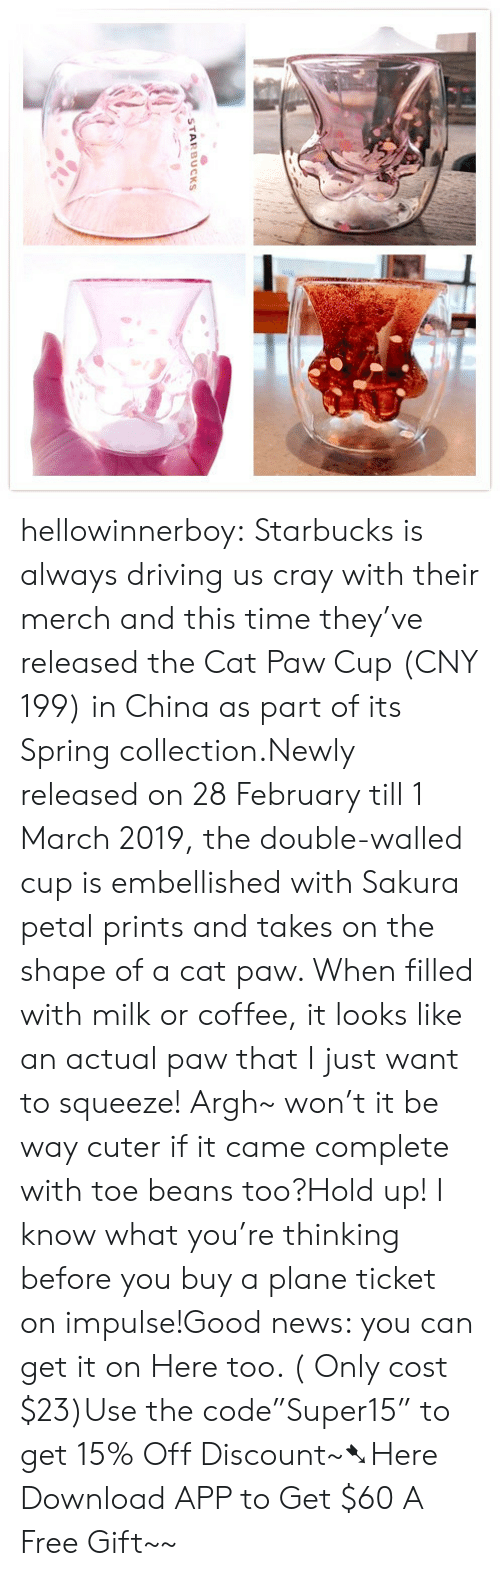 "Driving, News, and Starbucks: STARBUCKS hellowinnerboy:  Starbucks is always driving us cray with their merch and this time they've released the Cat Paw Cup (CNY 199) in China as part of its Spring collection.Newly released on 28 February till 1 March 2019, the double-walled cup is embellished with Sakura petal prints and takes on the shape of a cat paw. When filled with milk or coffee, it looks like an actual paw that I just want to squeeze! Argh~ won't it be way cuter if it came complete with toe beans too?Hold up! I know what you're thinking before you buy a plane ticket on impulse!Good news: you can get it on Here too. ( Only cost $23)Use the code""Super15"" to get 15% Off Discount~➷Here Download APP to Get $60  A Free Gift~~"